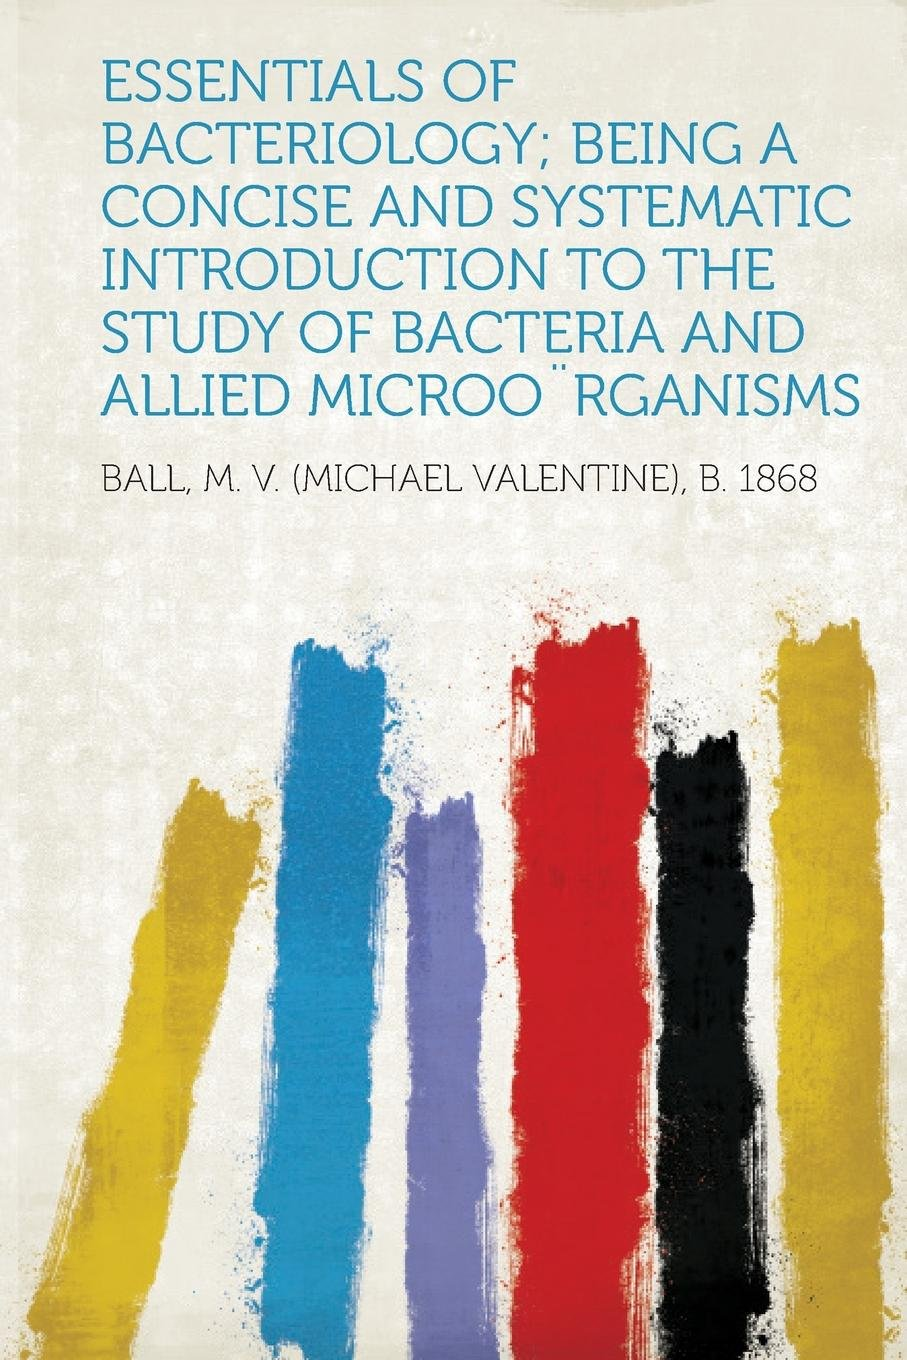 Read Online Essentials of Bacteriology; Being a Concise and Systematic Introduction to the Study of Bacteria and Allied Microo rganisms ebook